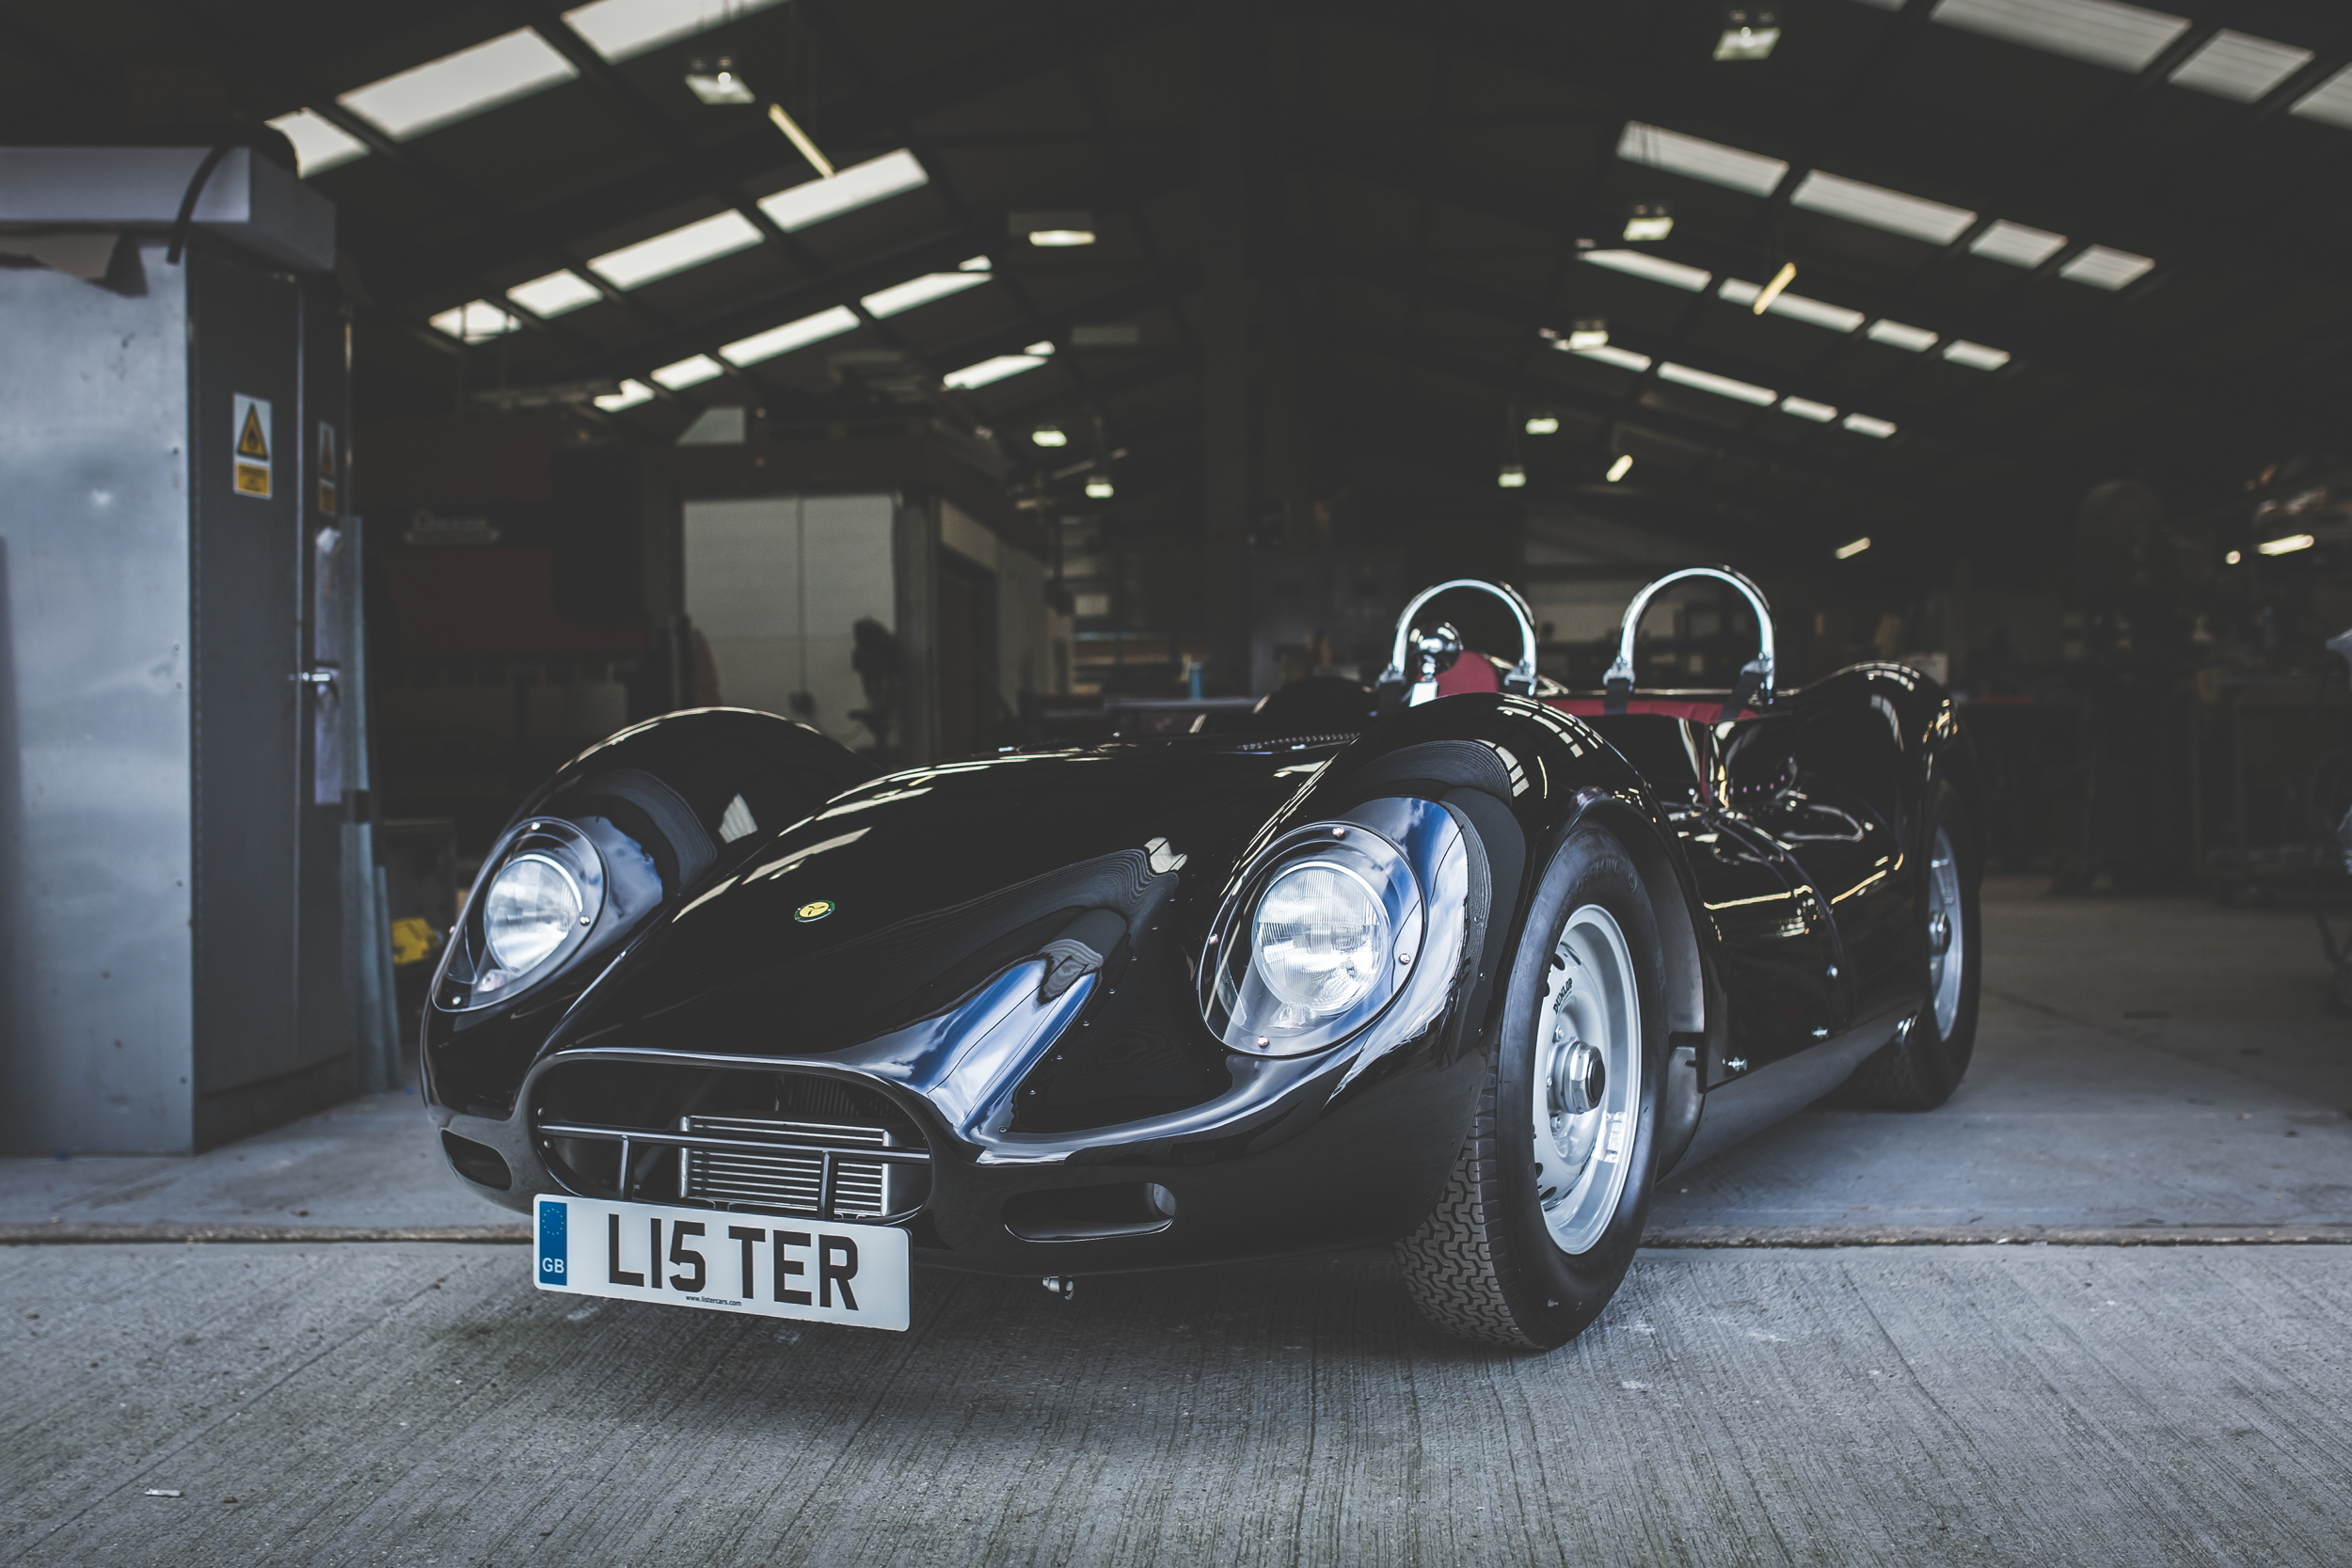 Lister Knobbly road-legal front